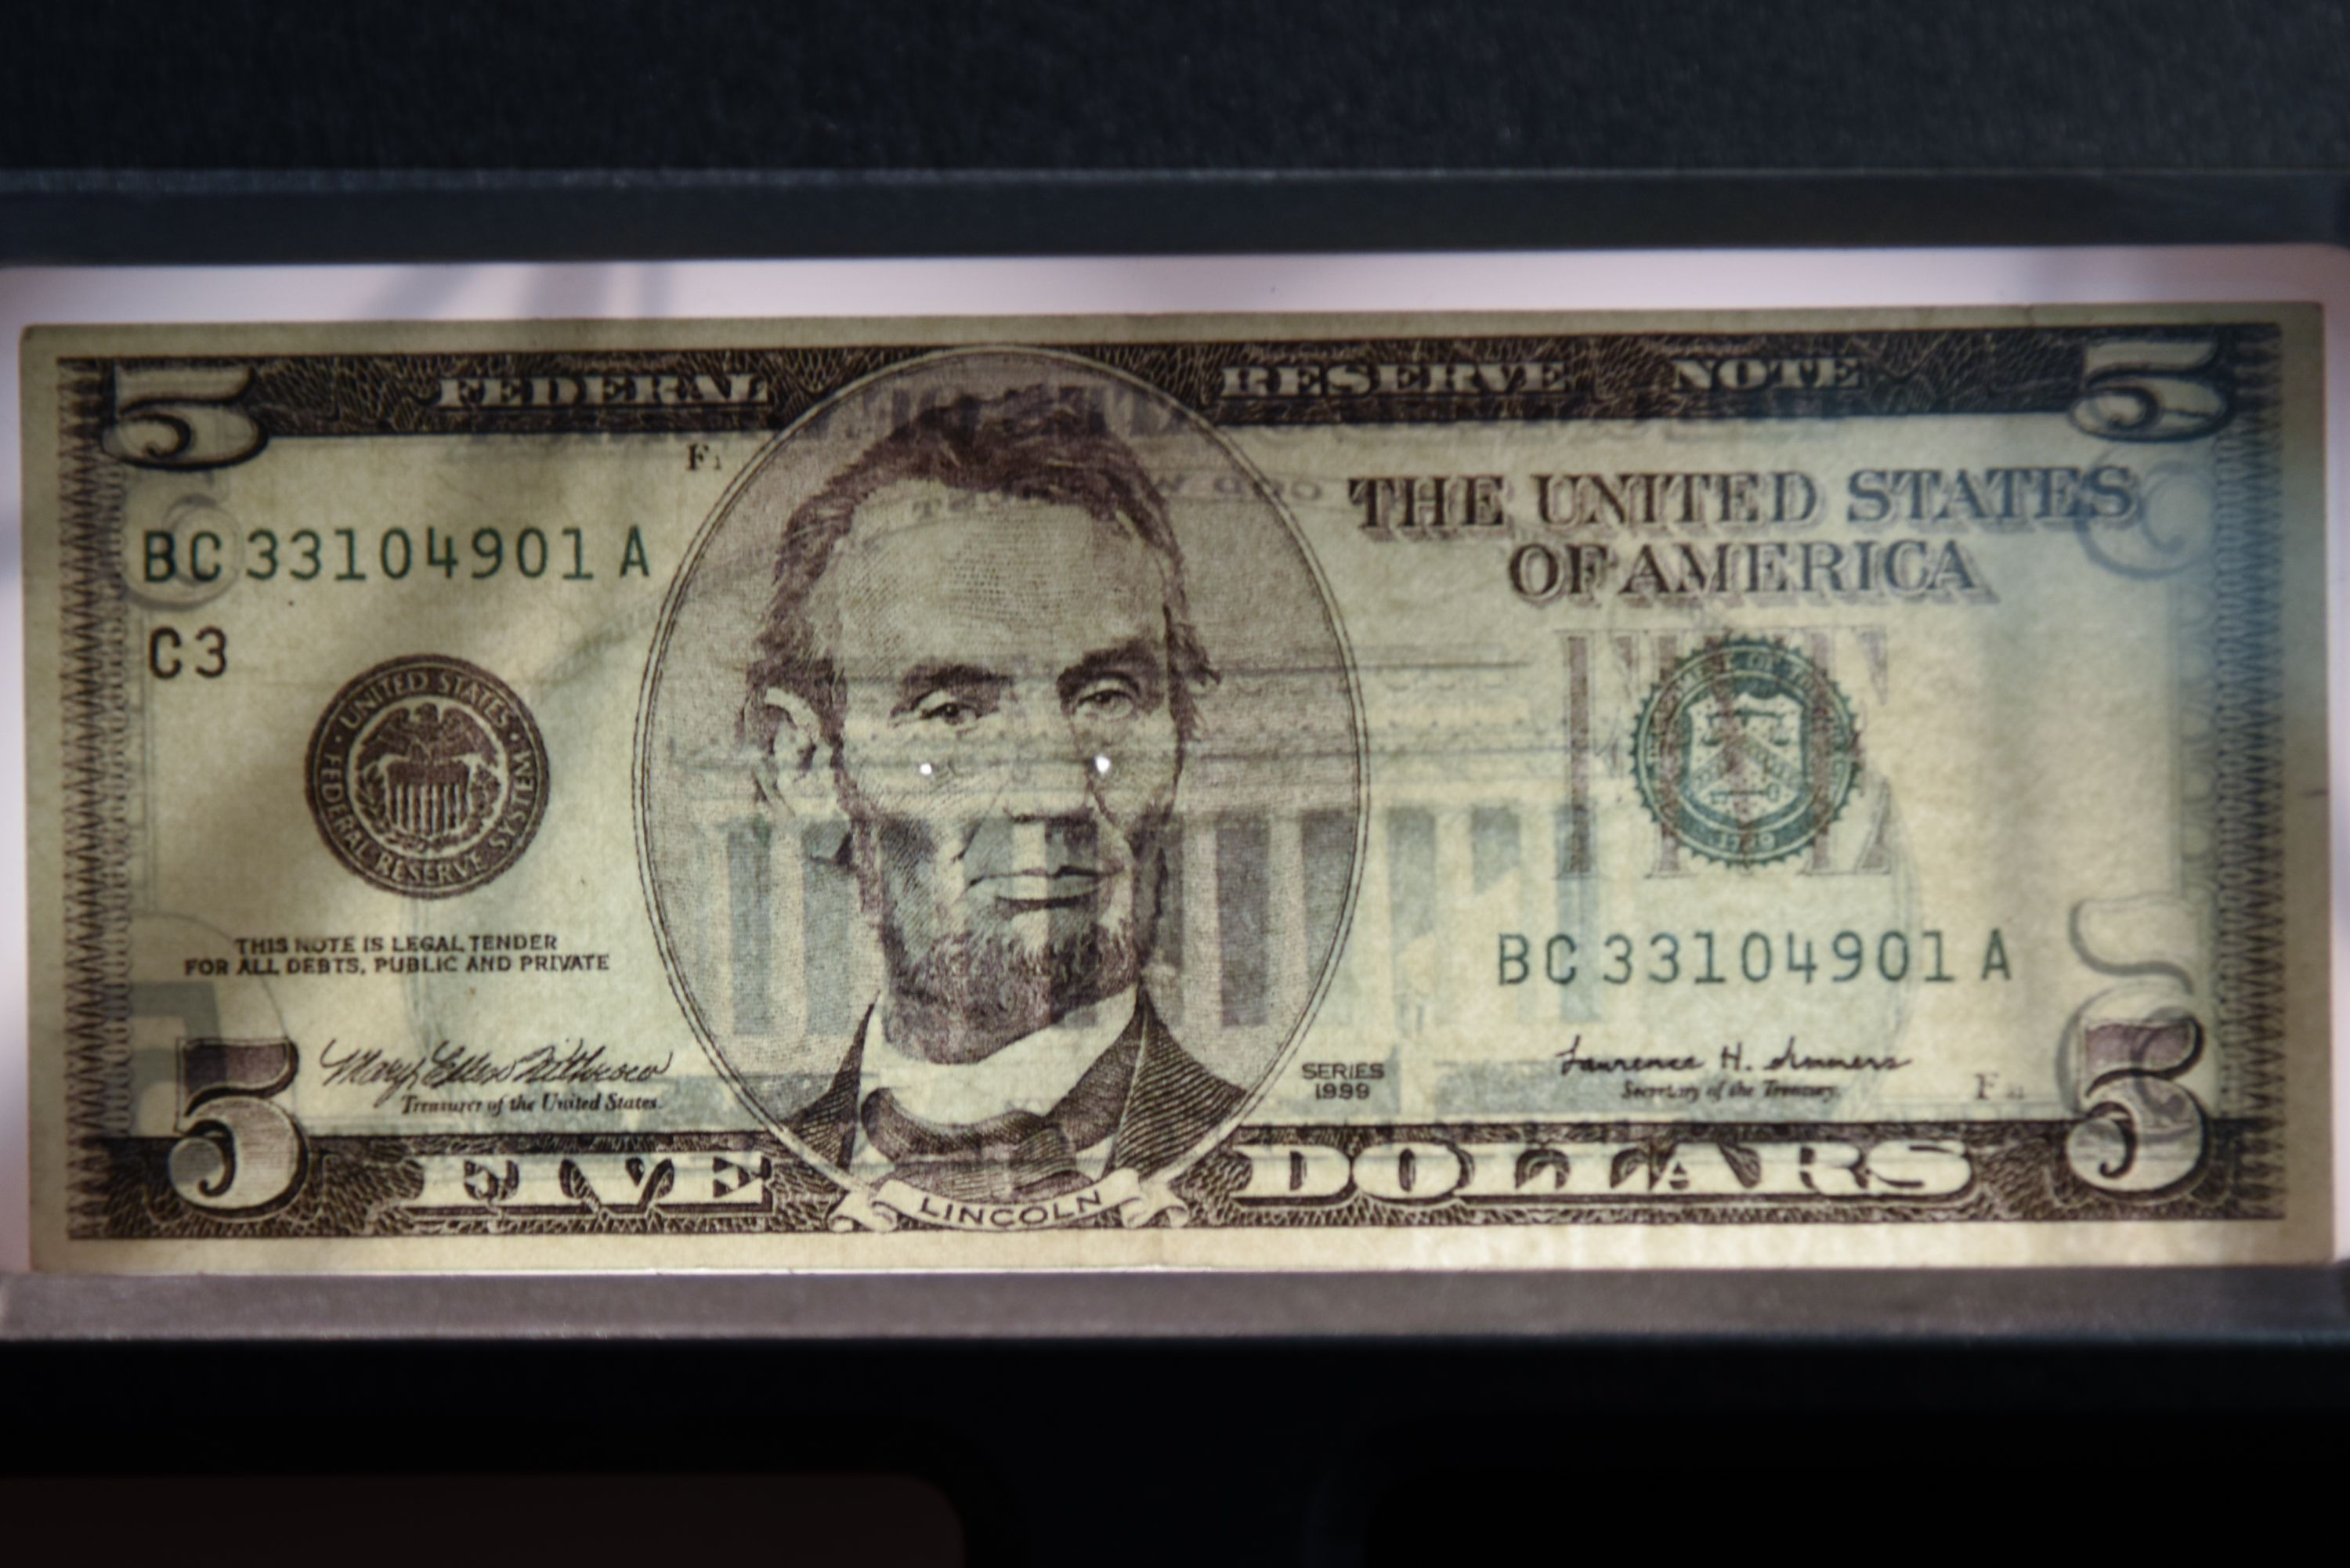 Counterfeit 5 Bill Like us to start each day with a